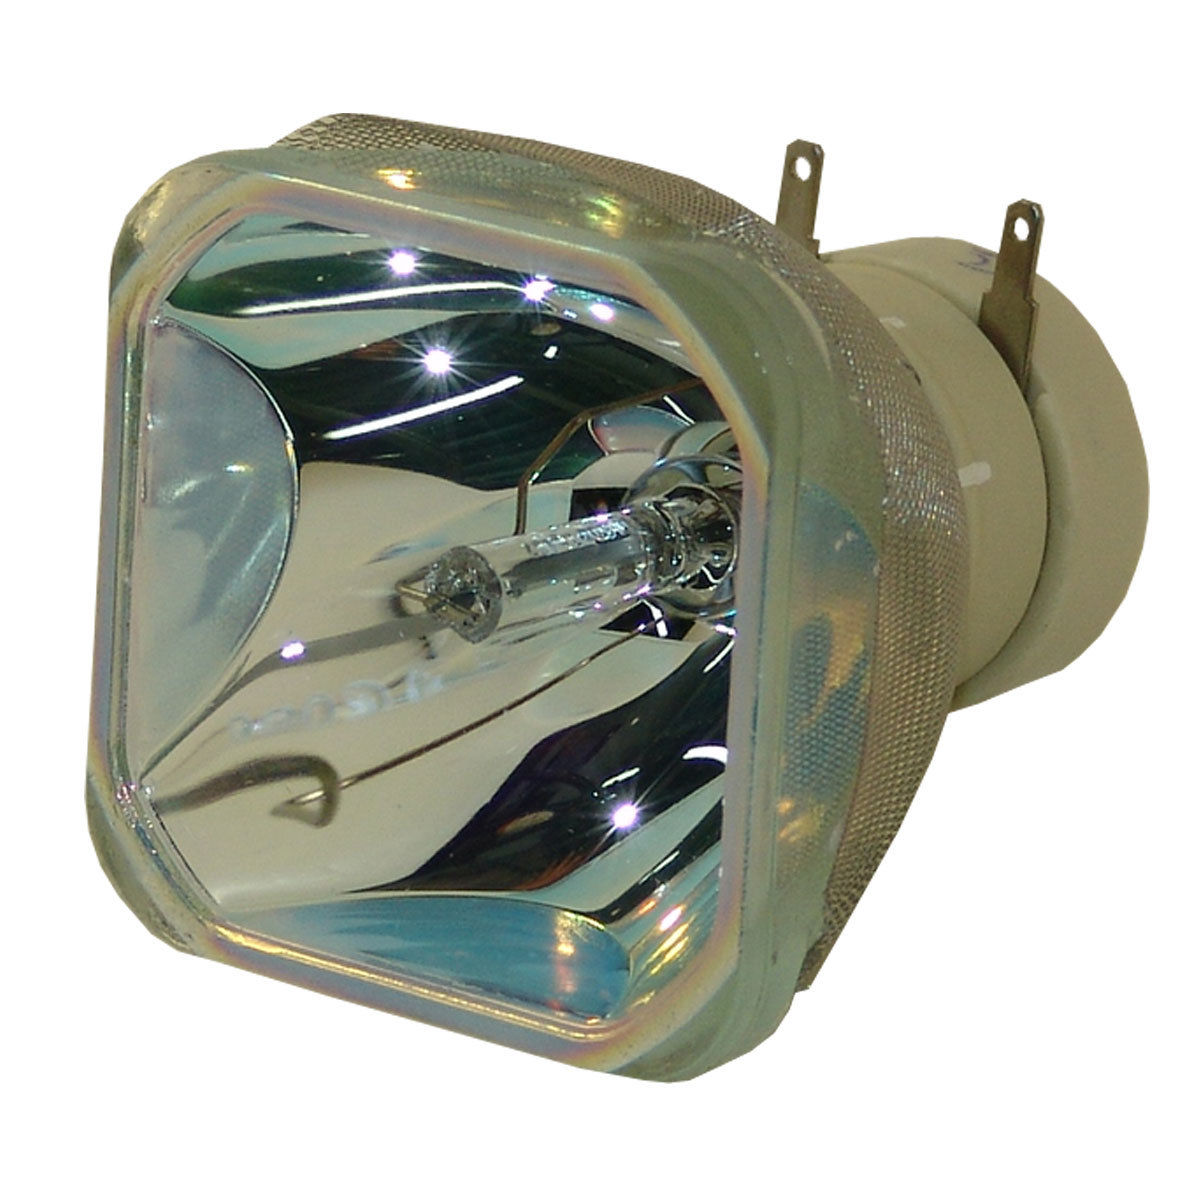 Compatible Bare Bulb DT01123 DT-01123 for HITACHI CP-D31N HCP-Q71, ImagePro 8112 Projector Lamp Bulb without housing